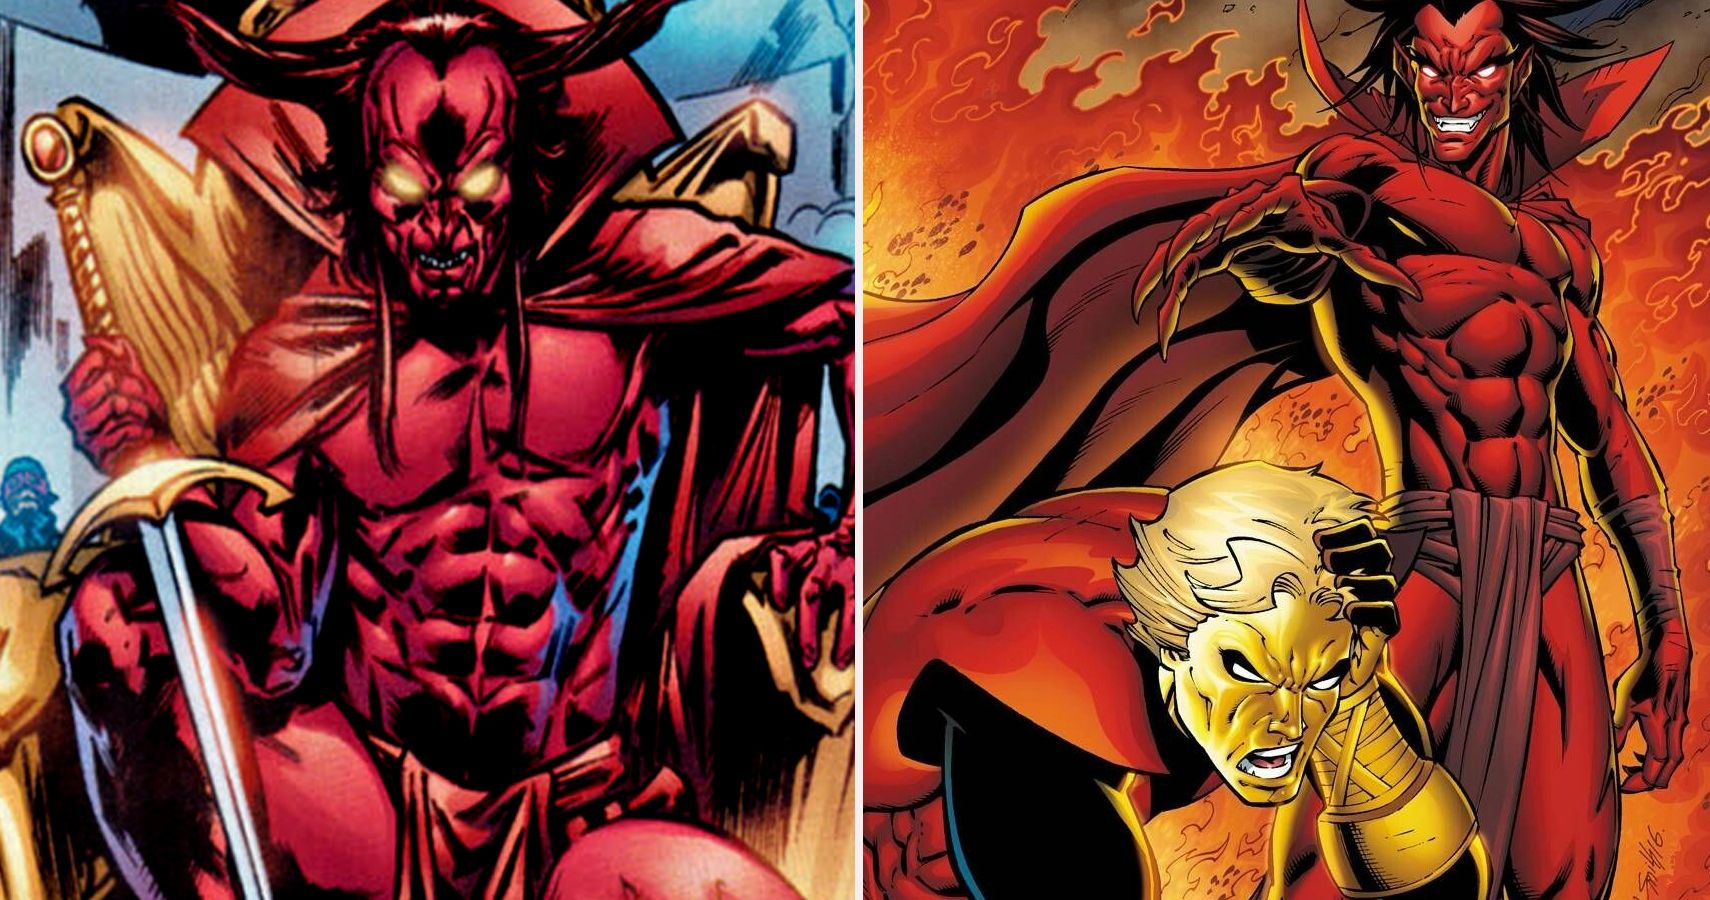 Mephisto Isn't the real Antagonist in Doctor Strange 2 & Wanda Vision